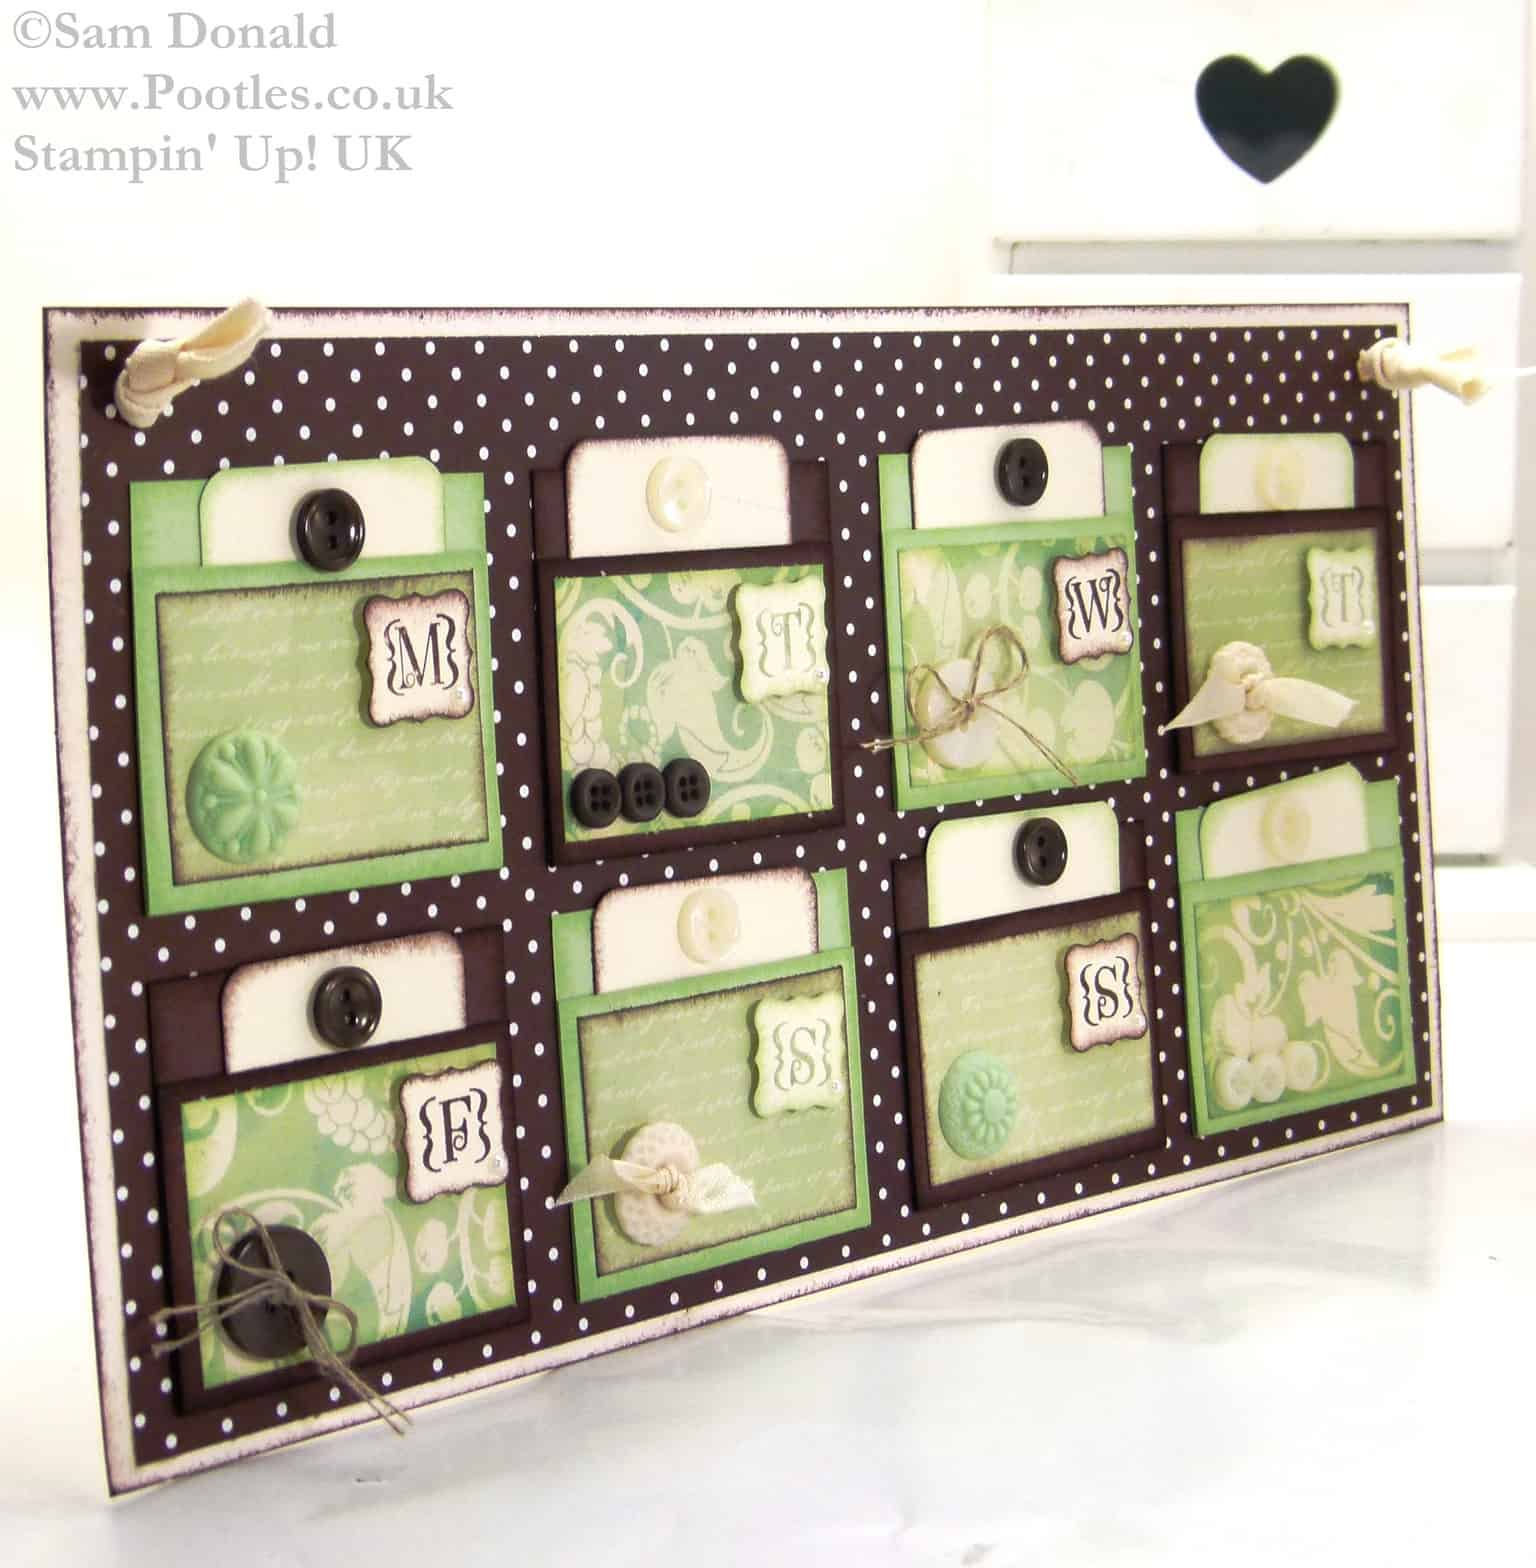 POOTLES Stampin Up UK Handmade Gift Weekly Goal Chart 7